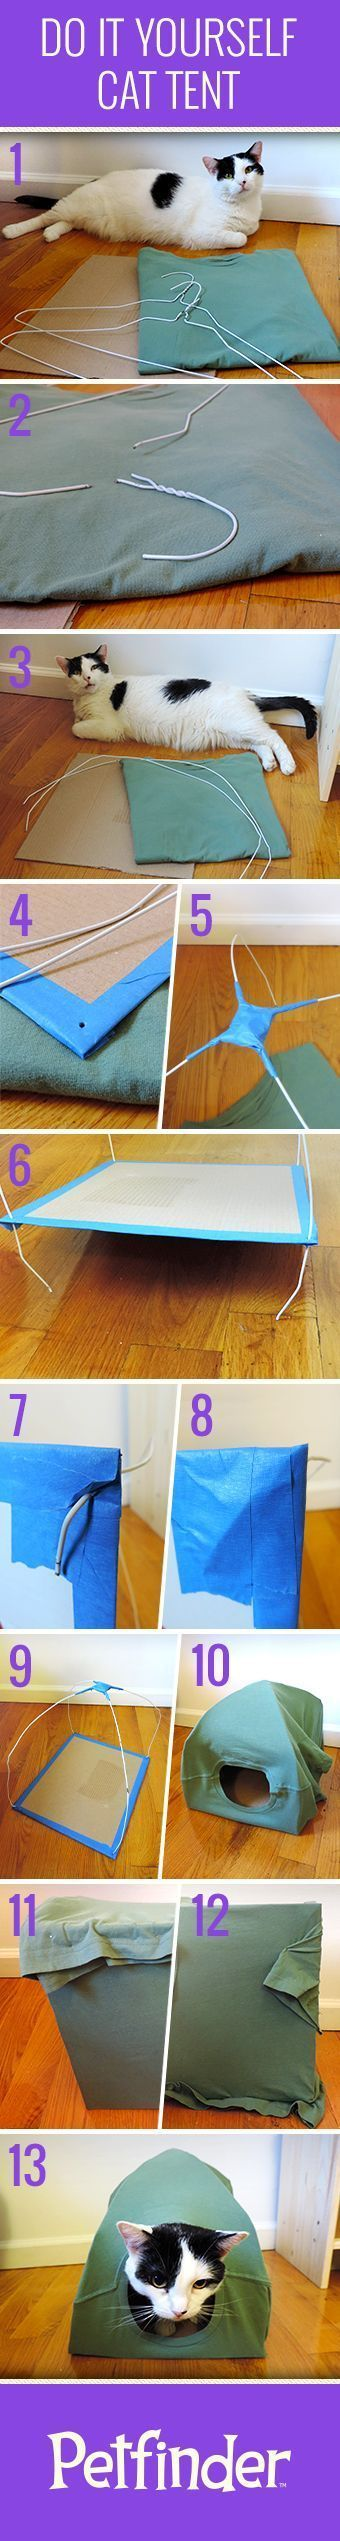 Make your cat a happy camper by putting together this easy DIY project. It just takes a couple of coat hangers, cardboard, tape and an old t-shirt to make this cat tent - perfect for sleep and play! #catsdiytoy